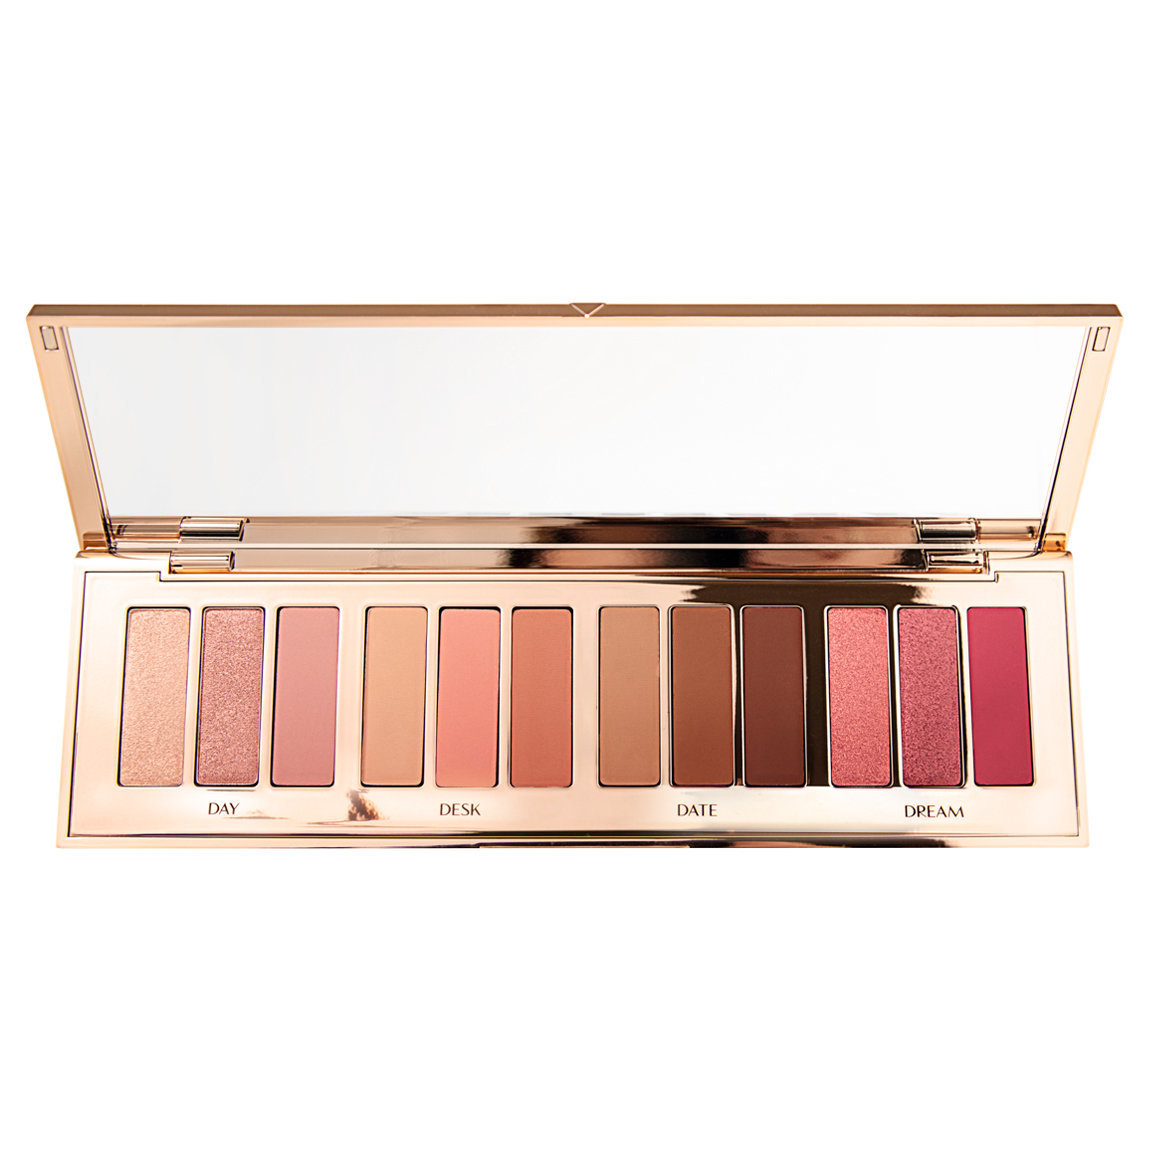 Charlotte Tilbury Instant Eye Palette - Pillow Talk product swatch.